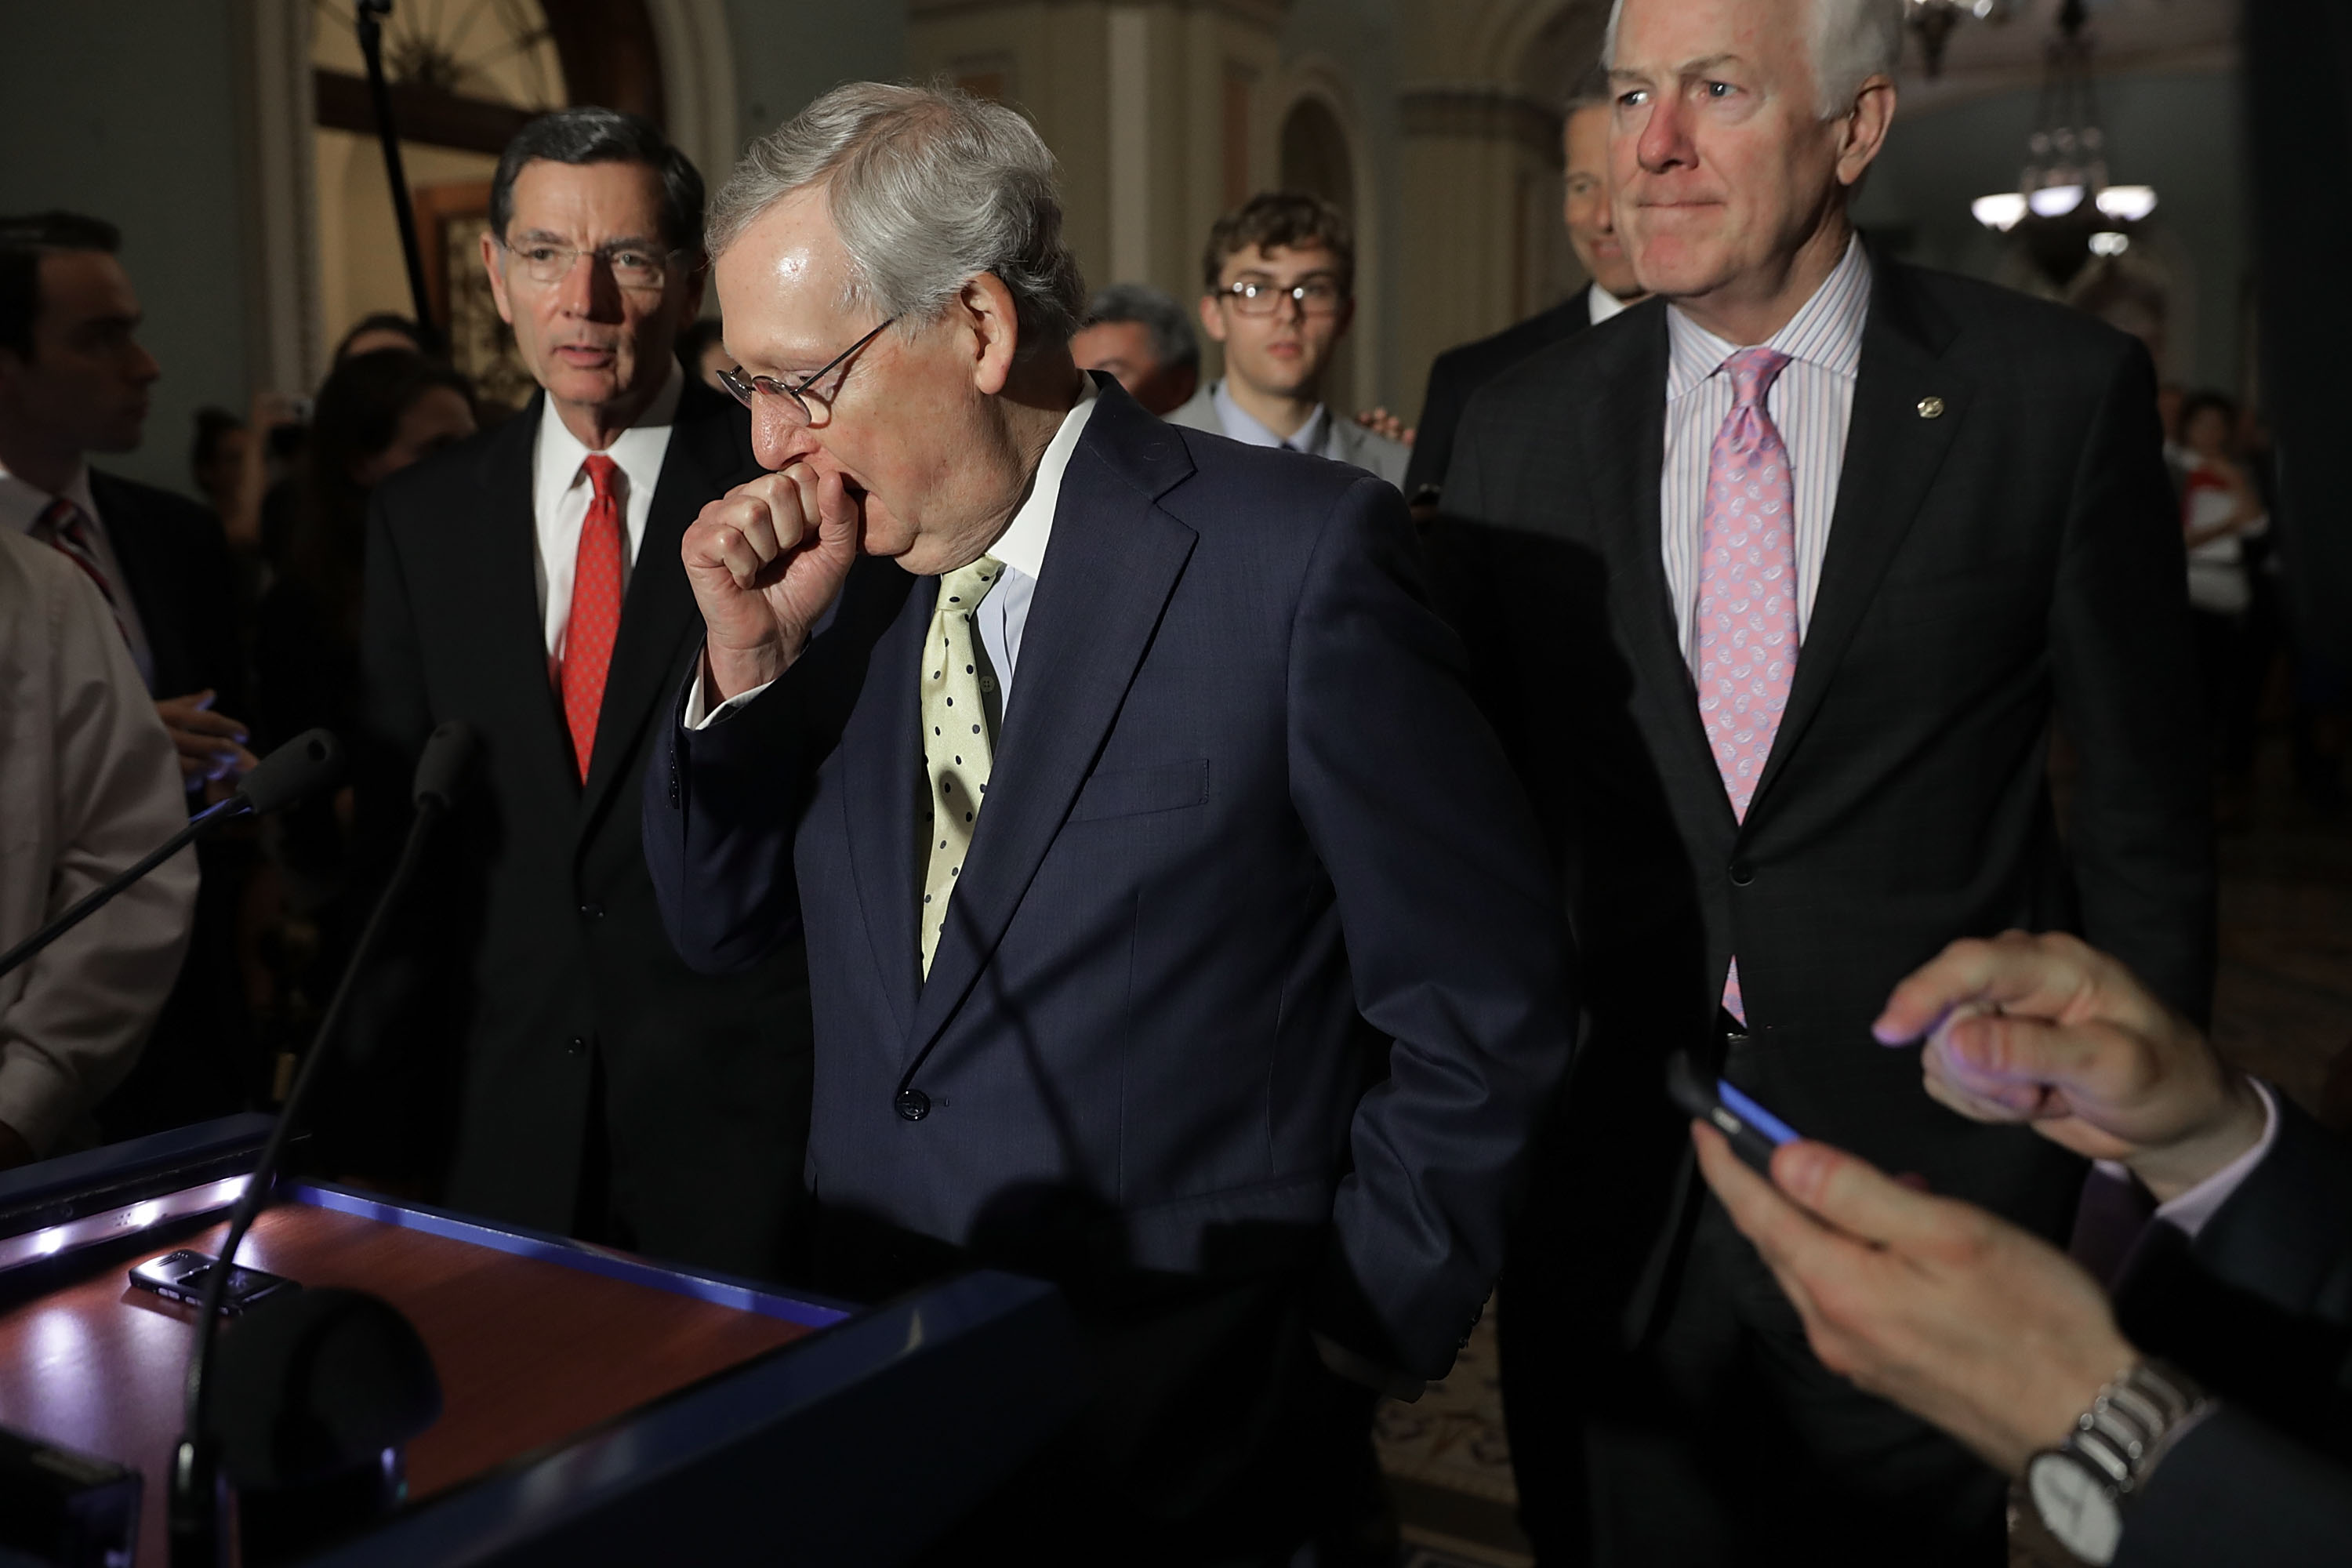 U.S. Senate Majority Leader Mitch McConnell (R-KY) (C) approaches the microphones before talking with reporters with Sen. John Barrasso (R-WY) (L) and Senate Majority Whip John Cornyn (R-TX) following the weekly GOP policy luncheon at the U.S. Capitol June 20, 2017 in Washington, D.C.